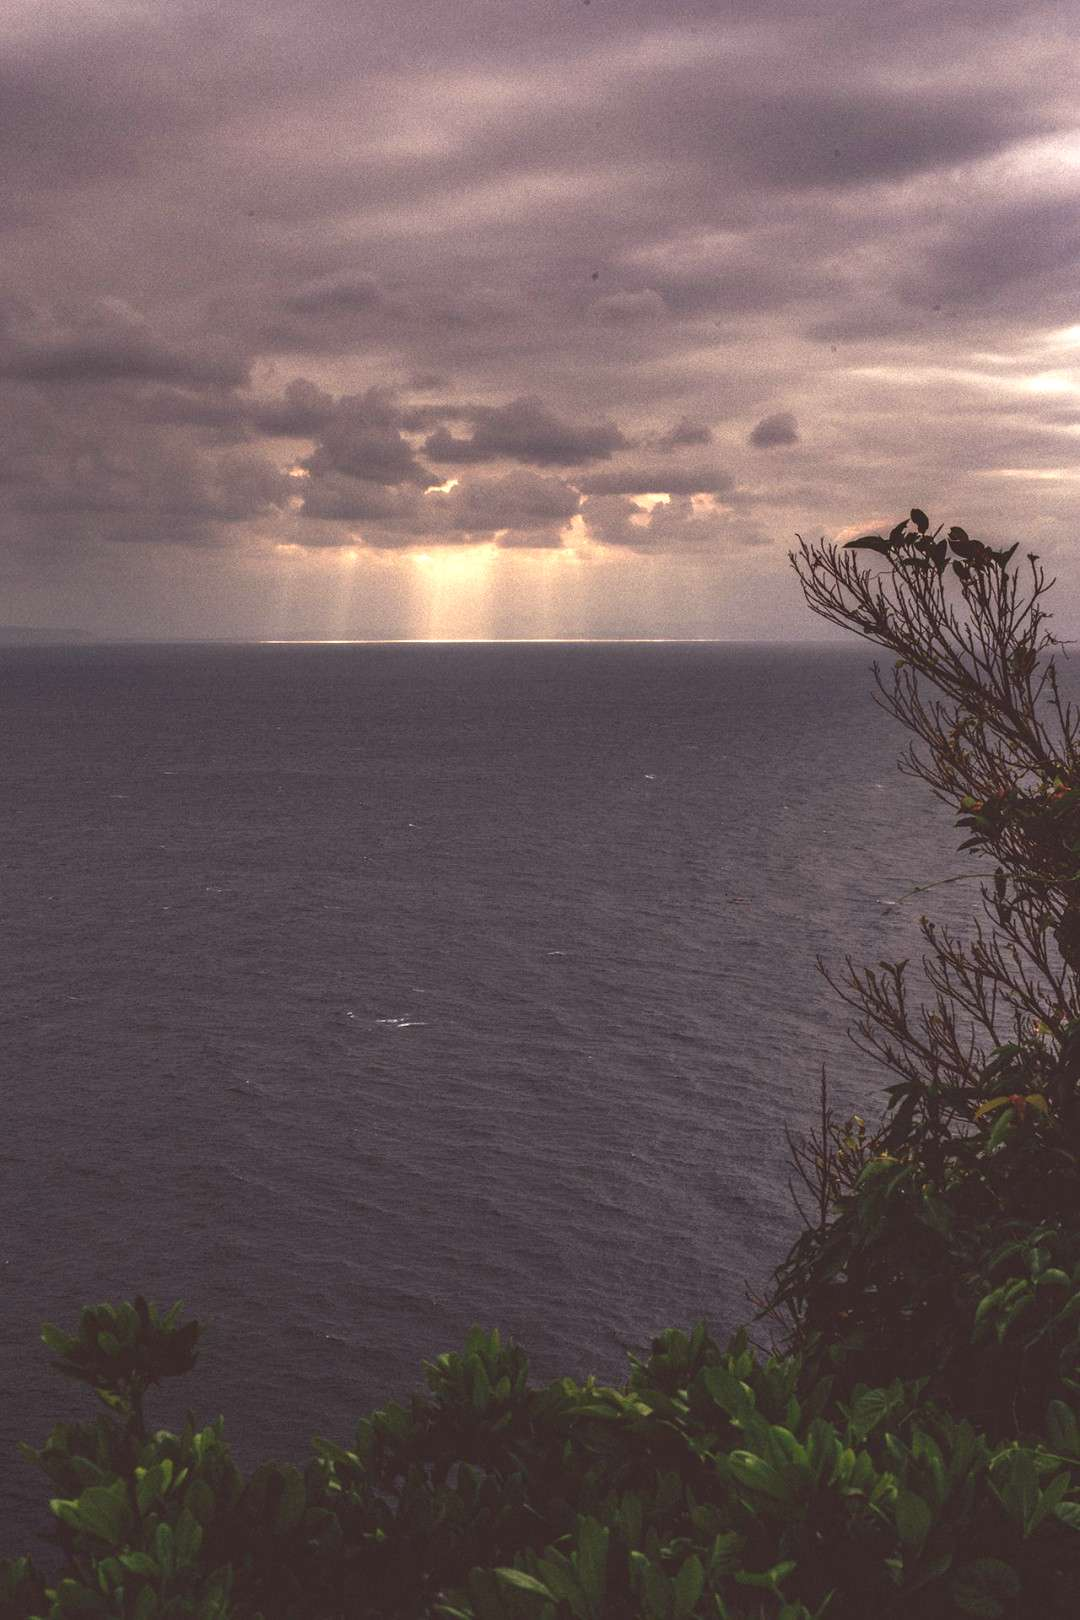 I love when paradise islands show their gloomy sides! -